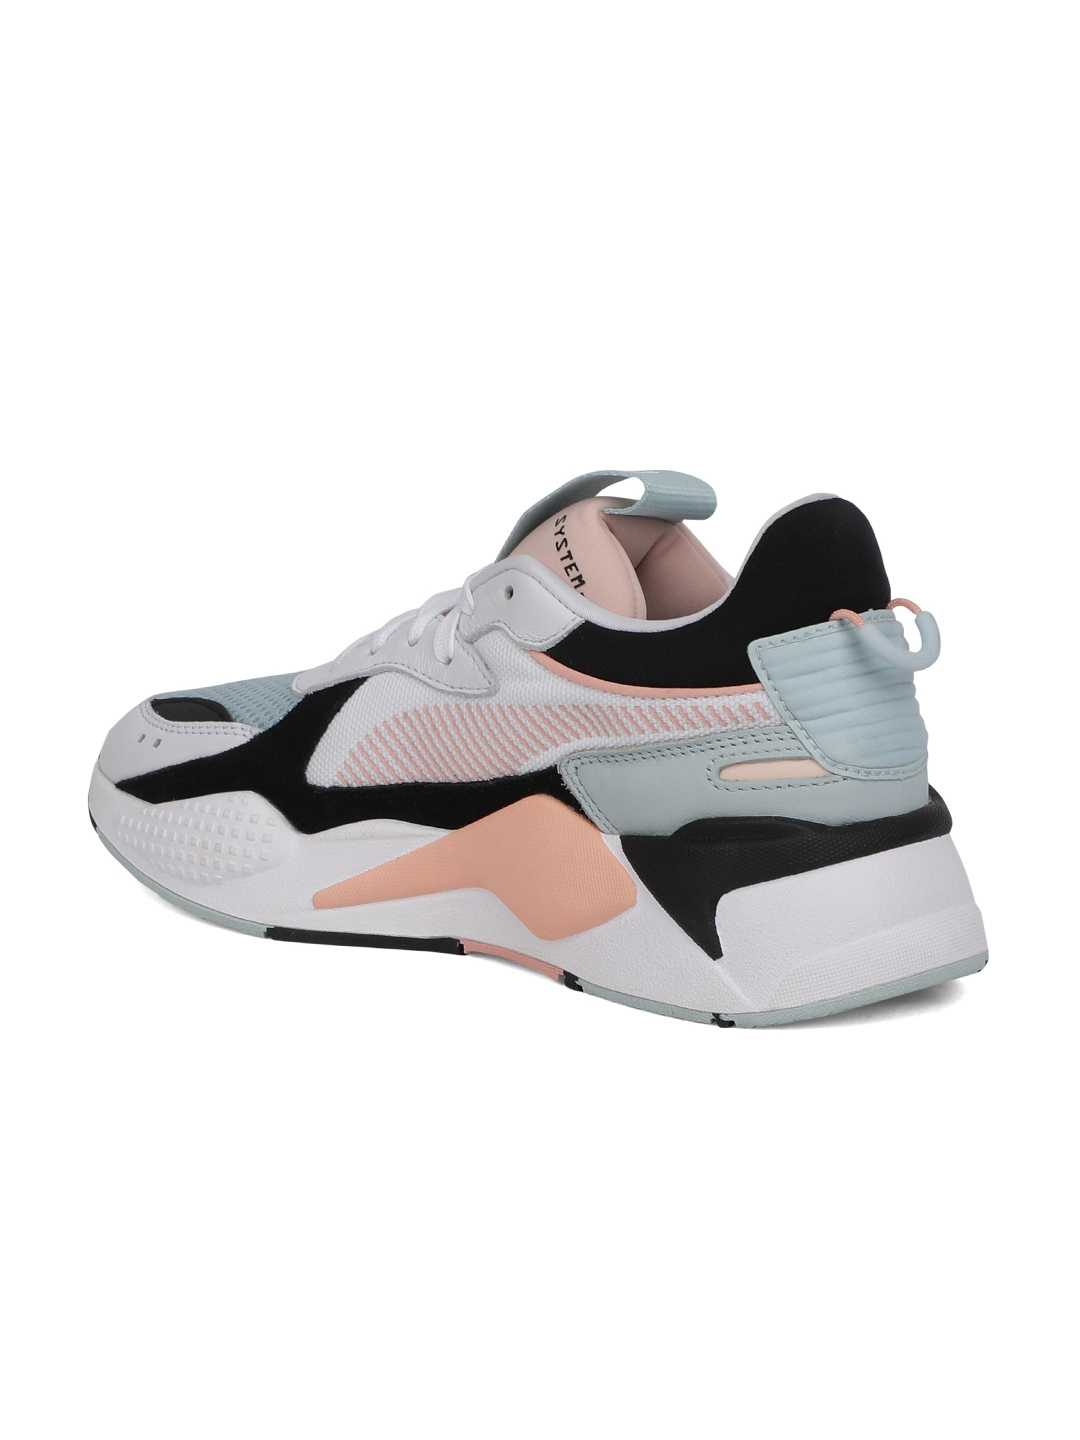 4e308b9d4762 Buy Puma Unisex White RS X Reinvention - Casual Shoes for Unisex ...